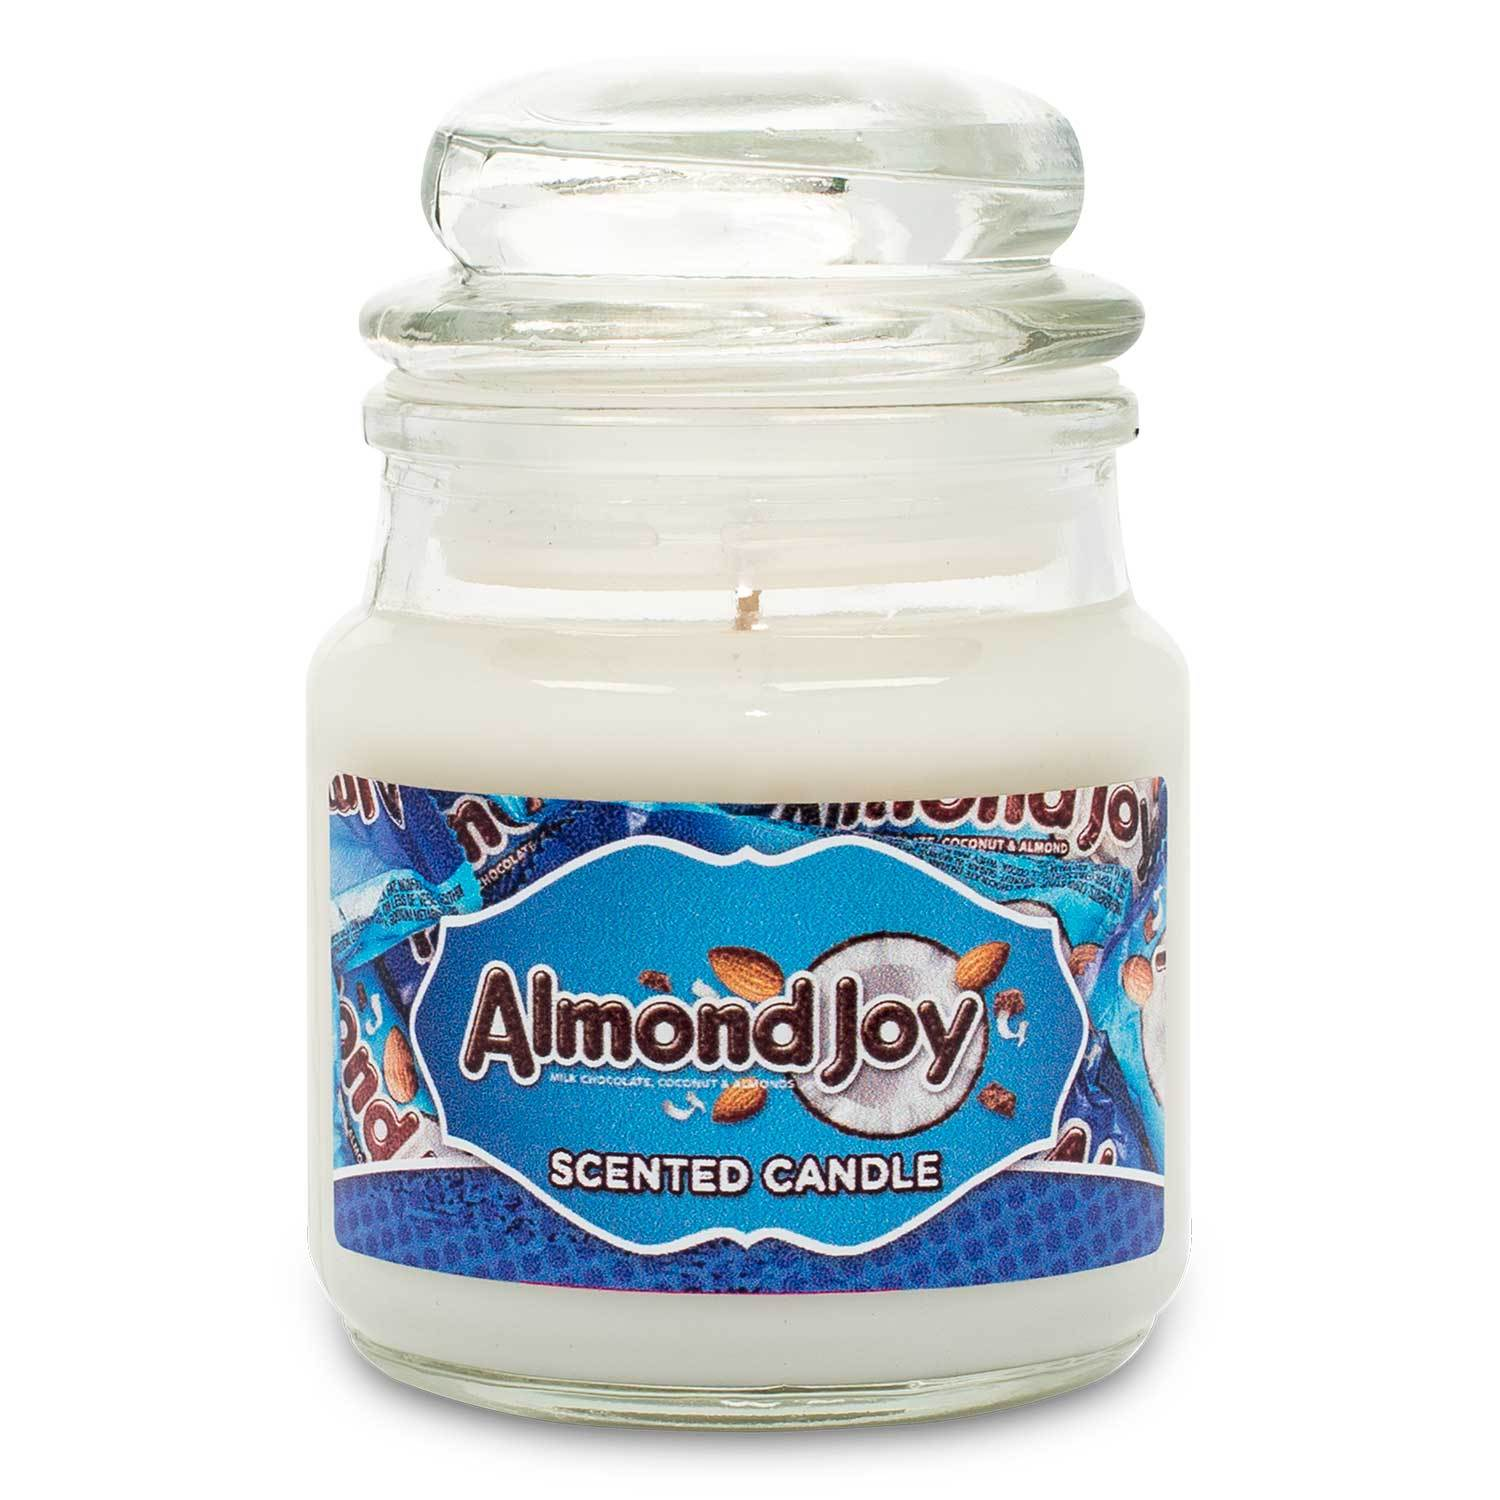 HERSHEY'S Almond Joy Scented Mini Candle Candles Candlemart.com $ 2.99